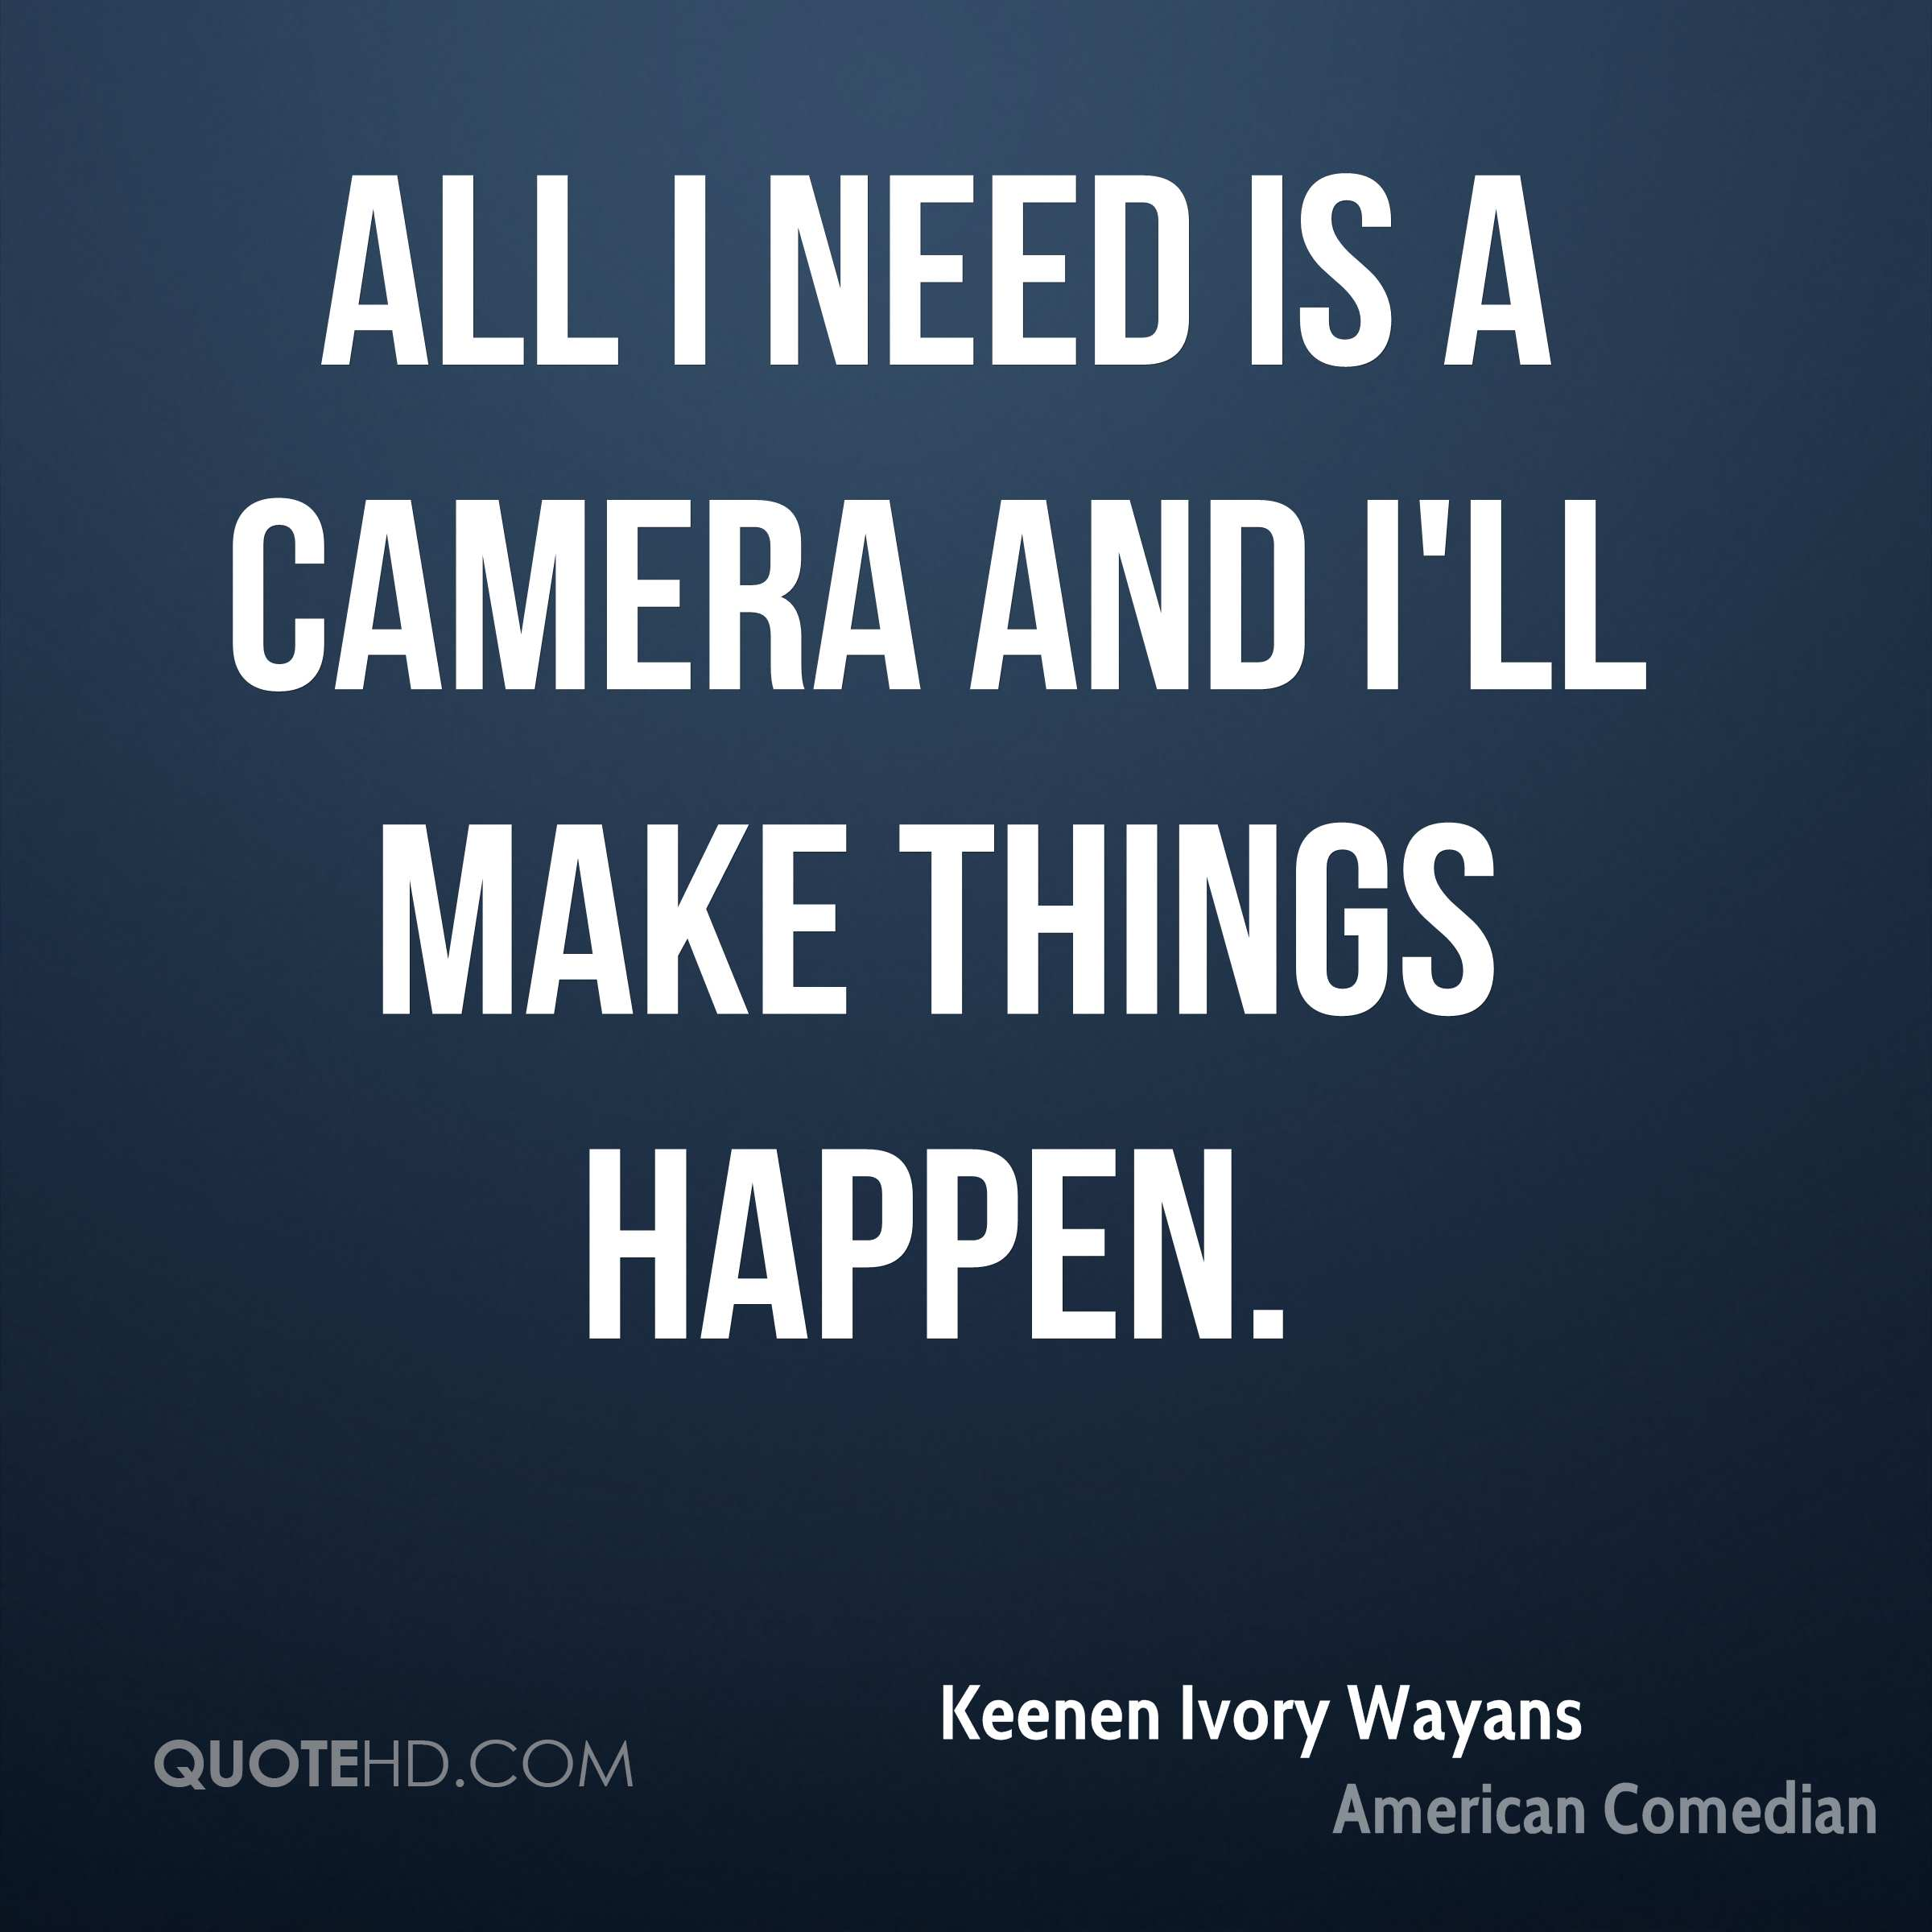 All I need is a camera and I'll make things happen.